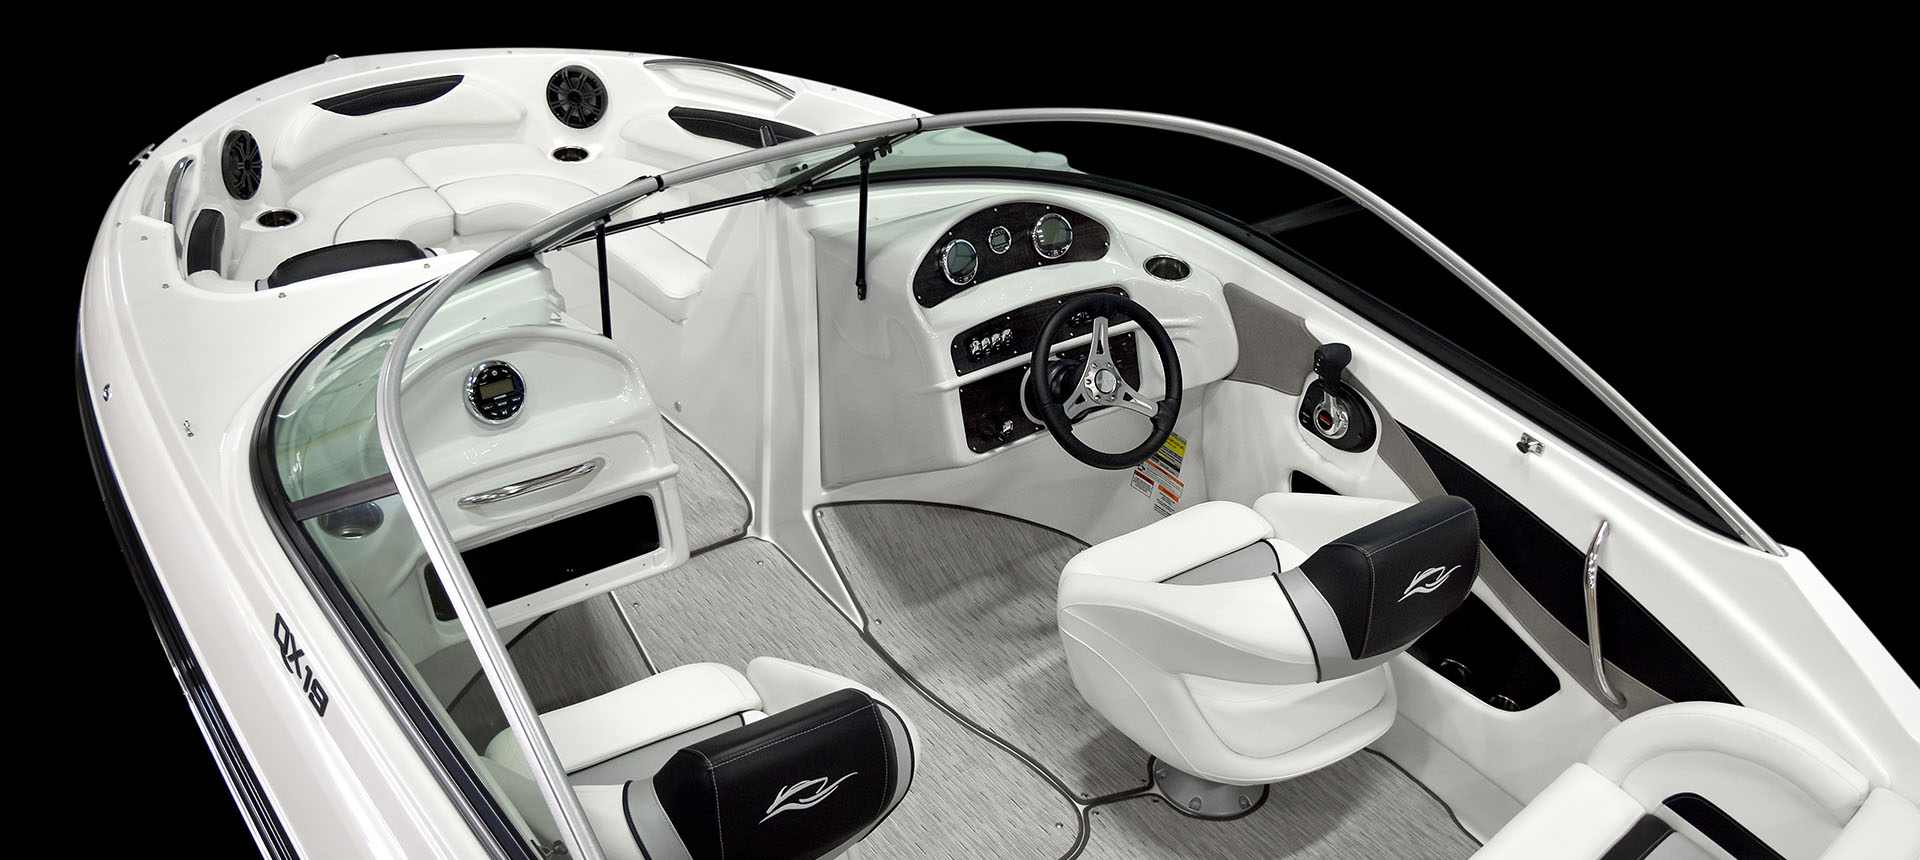 Pic of 19QX Outboard boat interior